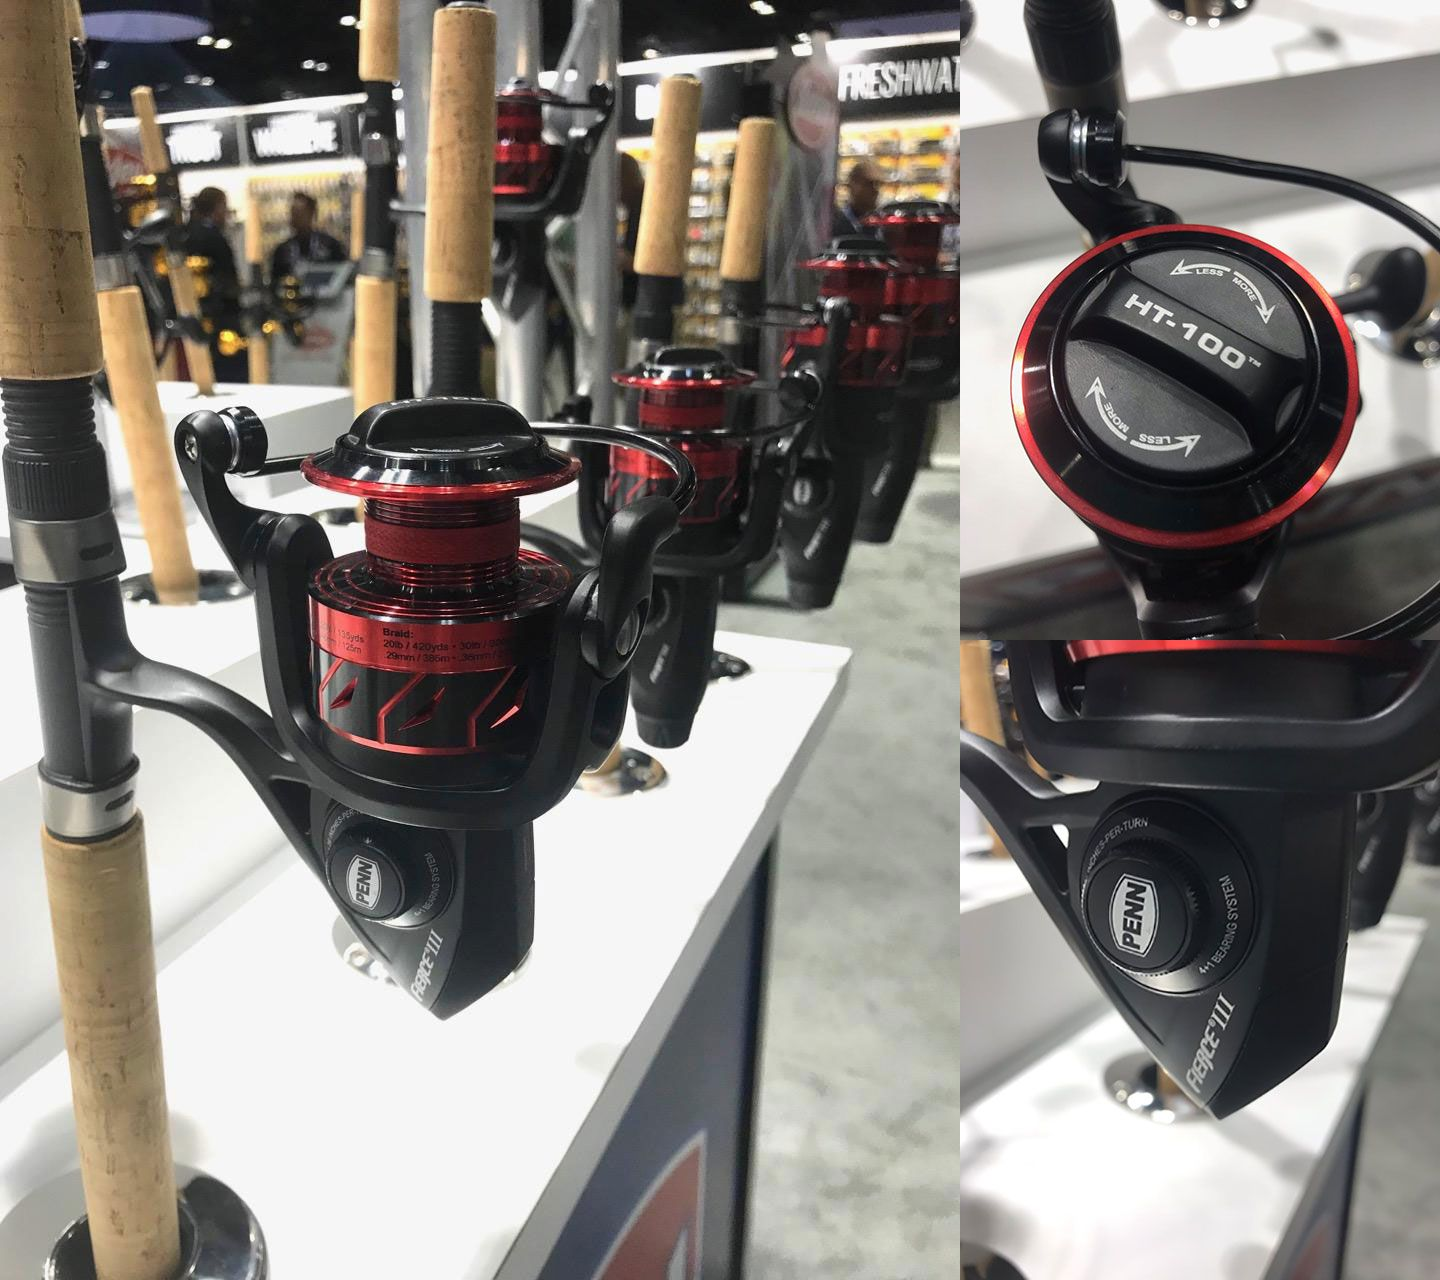 The 3rd generation of Penn's Fierce spinning reels (soon available in a wide range of sizes) incorporate HT-100 drag washers and various higher-end features at a moderate price.